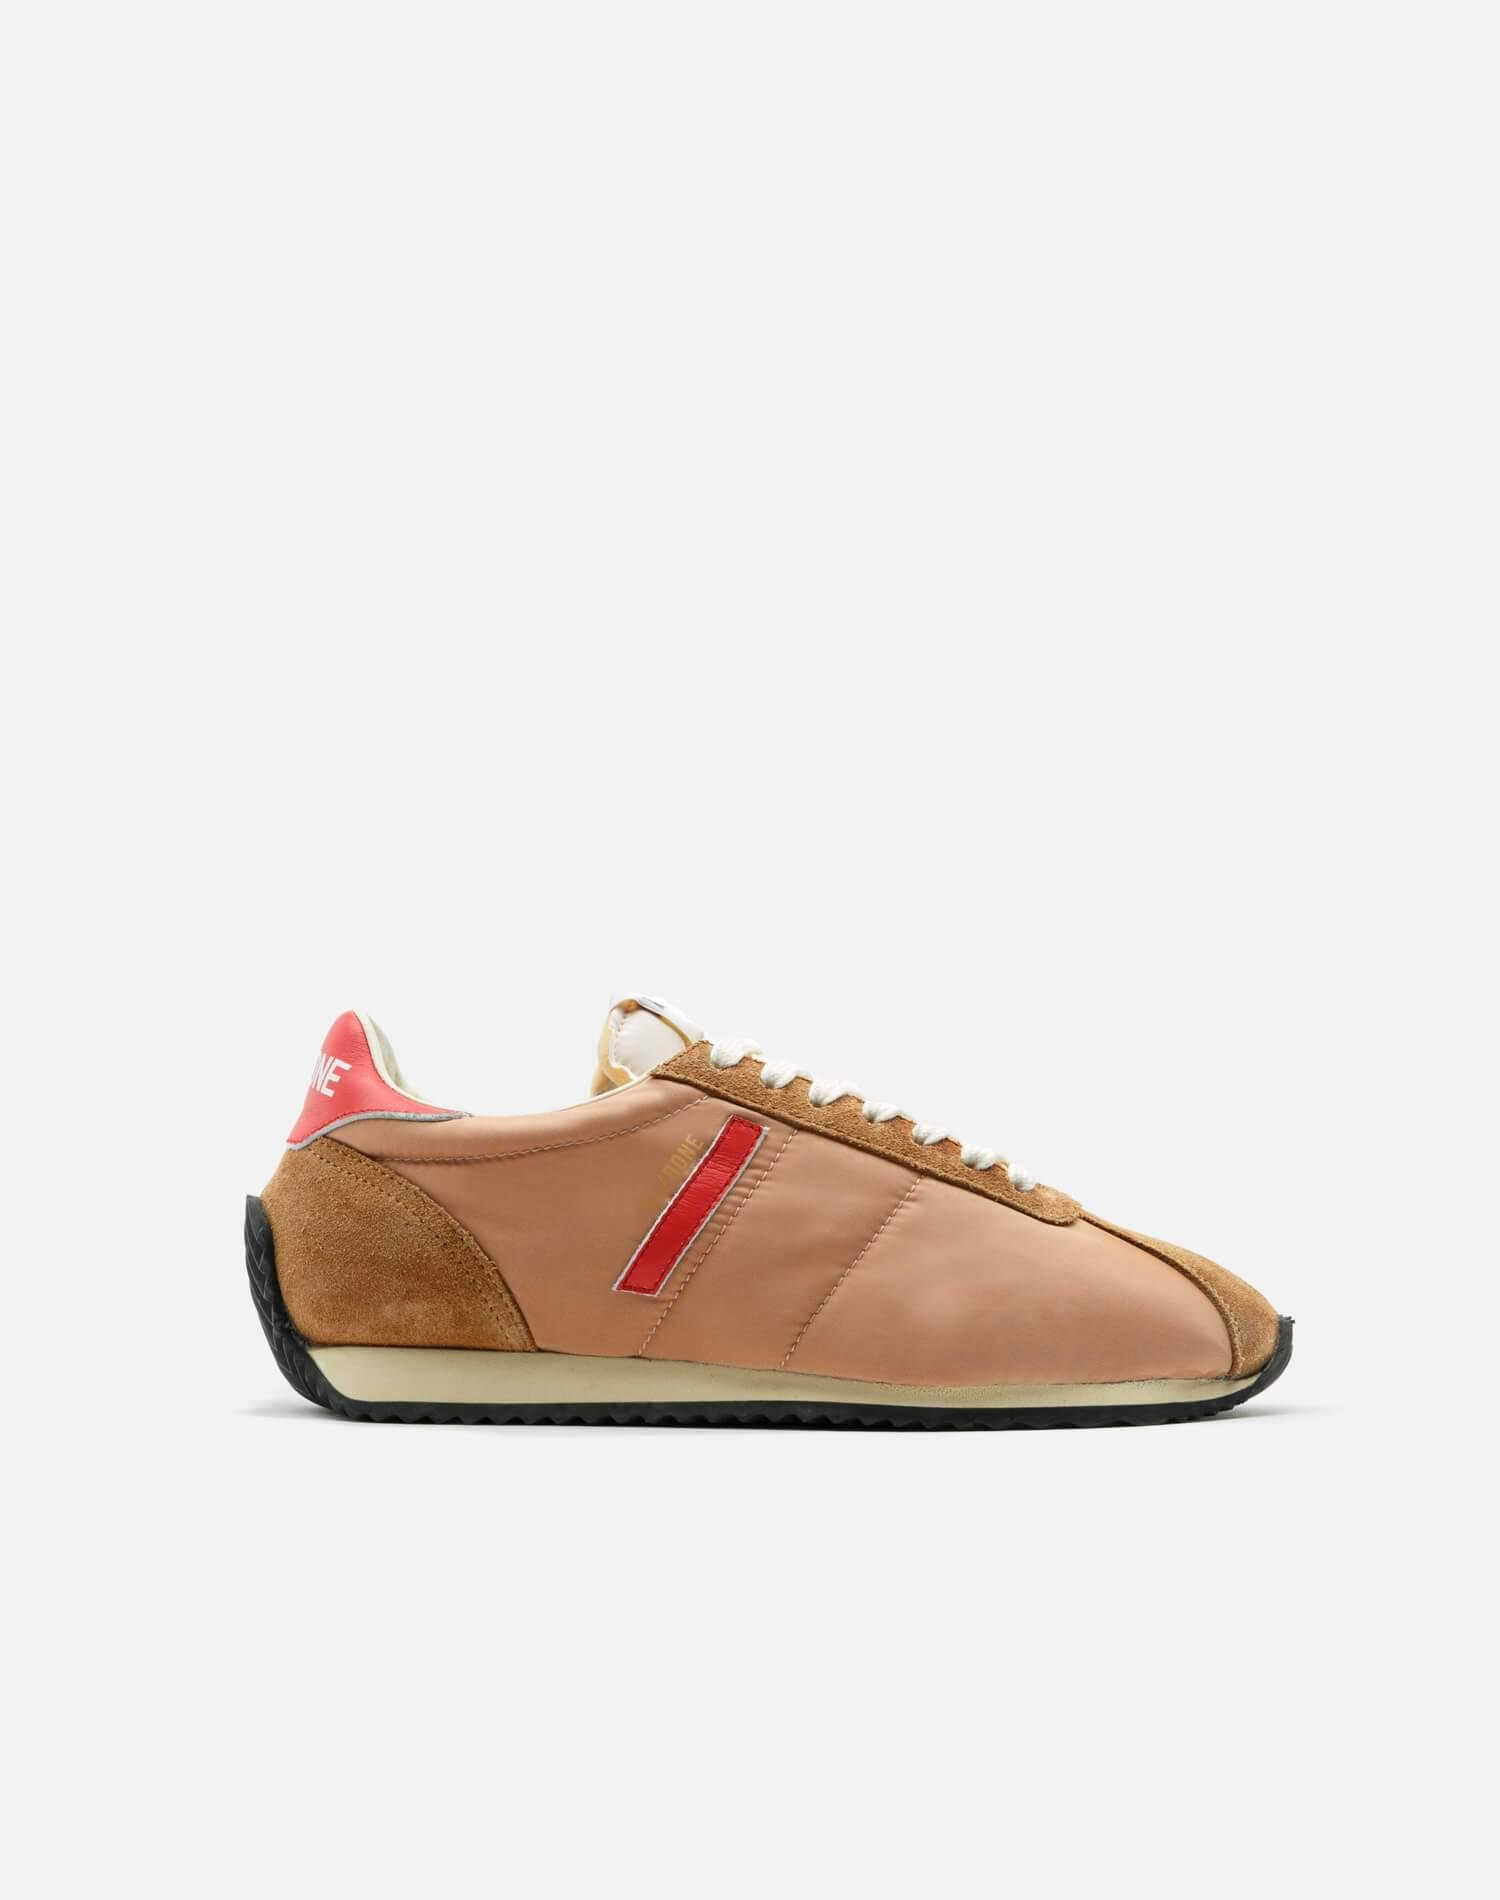 70s Runner Shoe - Tan and Red